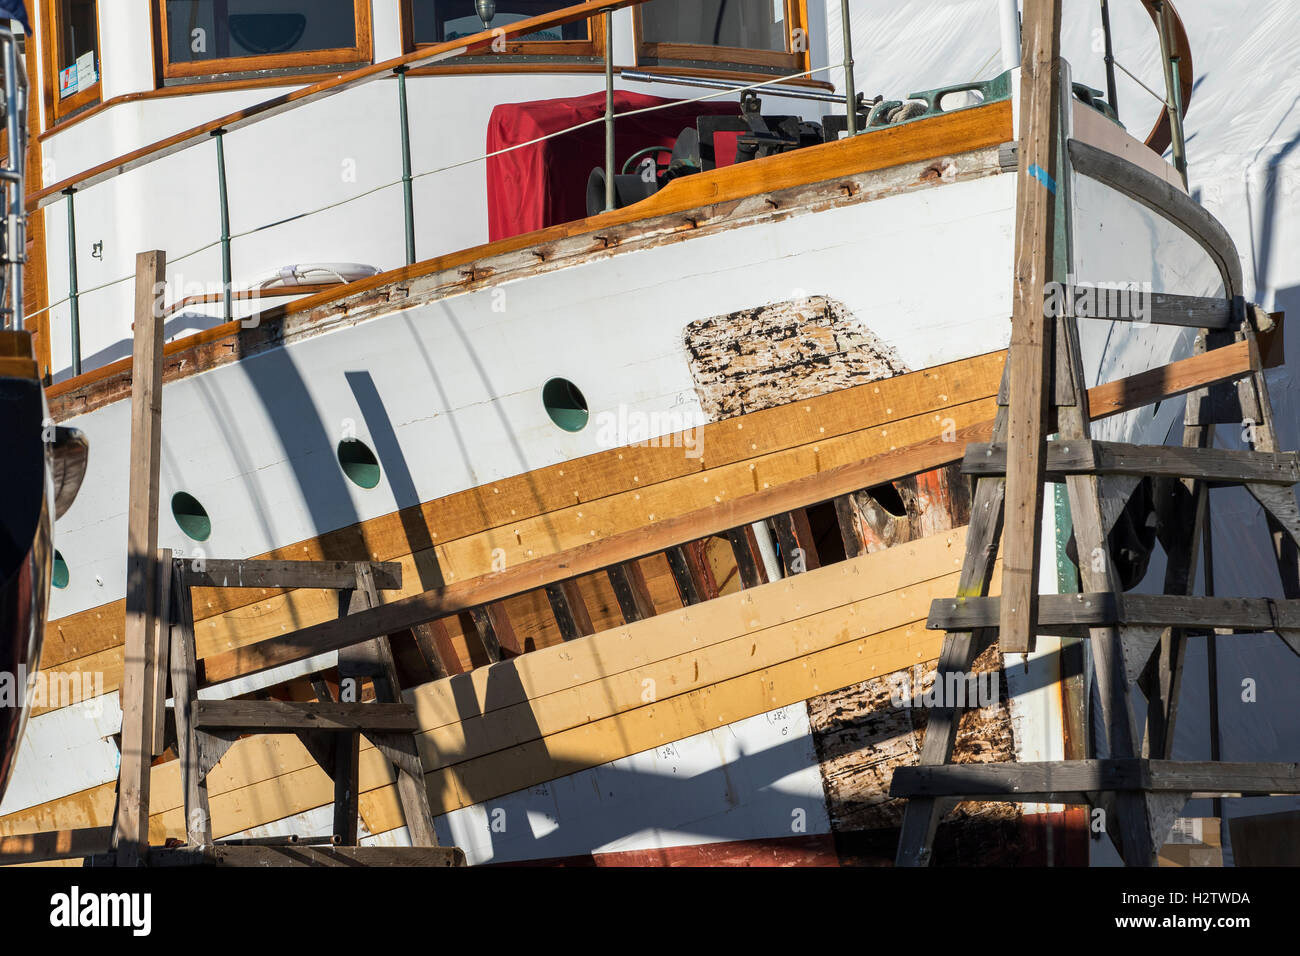 Wooden boat repair at dry dock by shipwright in Port Townsend boat yard. Stock Photo